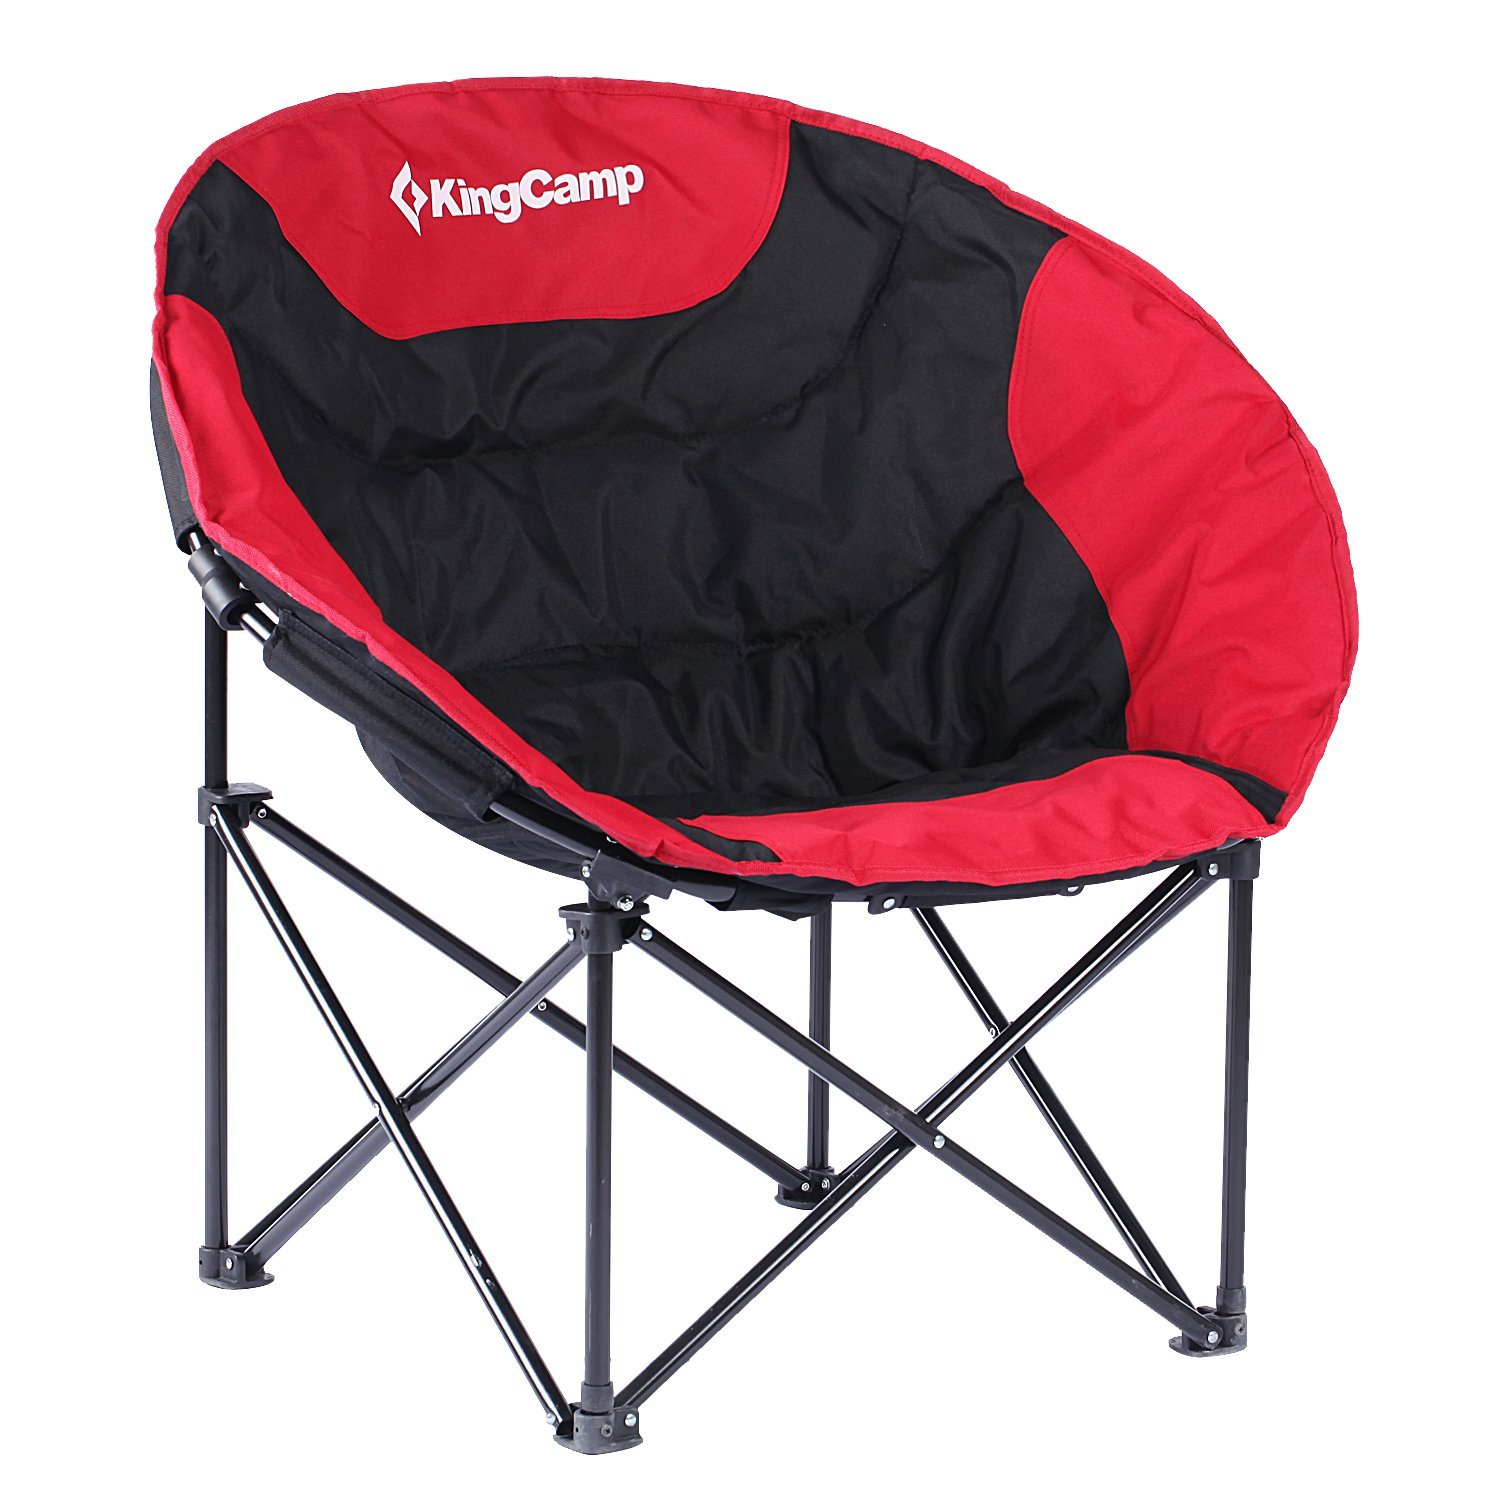 KingCamp Moon Lightweight Round Portable Stable Compact Folding All Seasons  Chair For Camping With Carry Bag, Indoor And Outdoor   Walmart.com